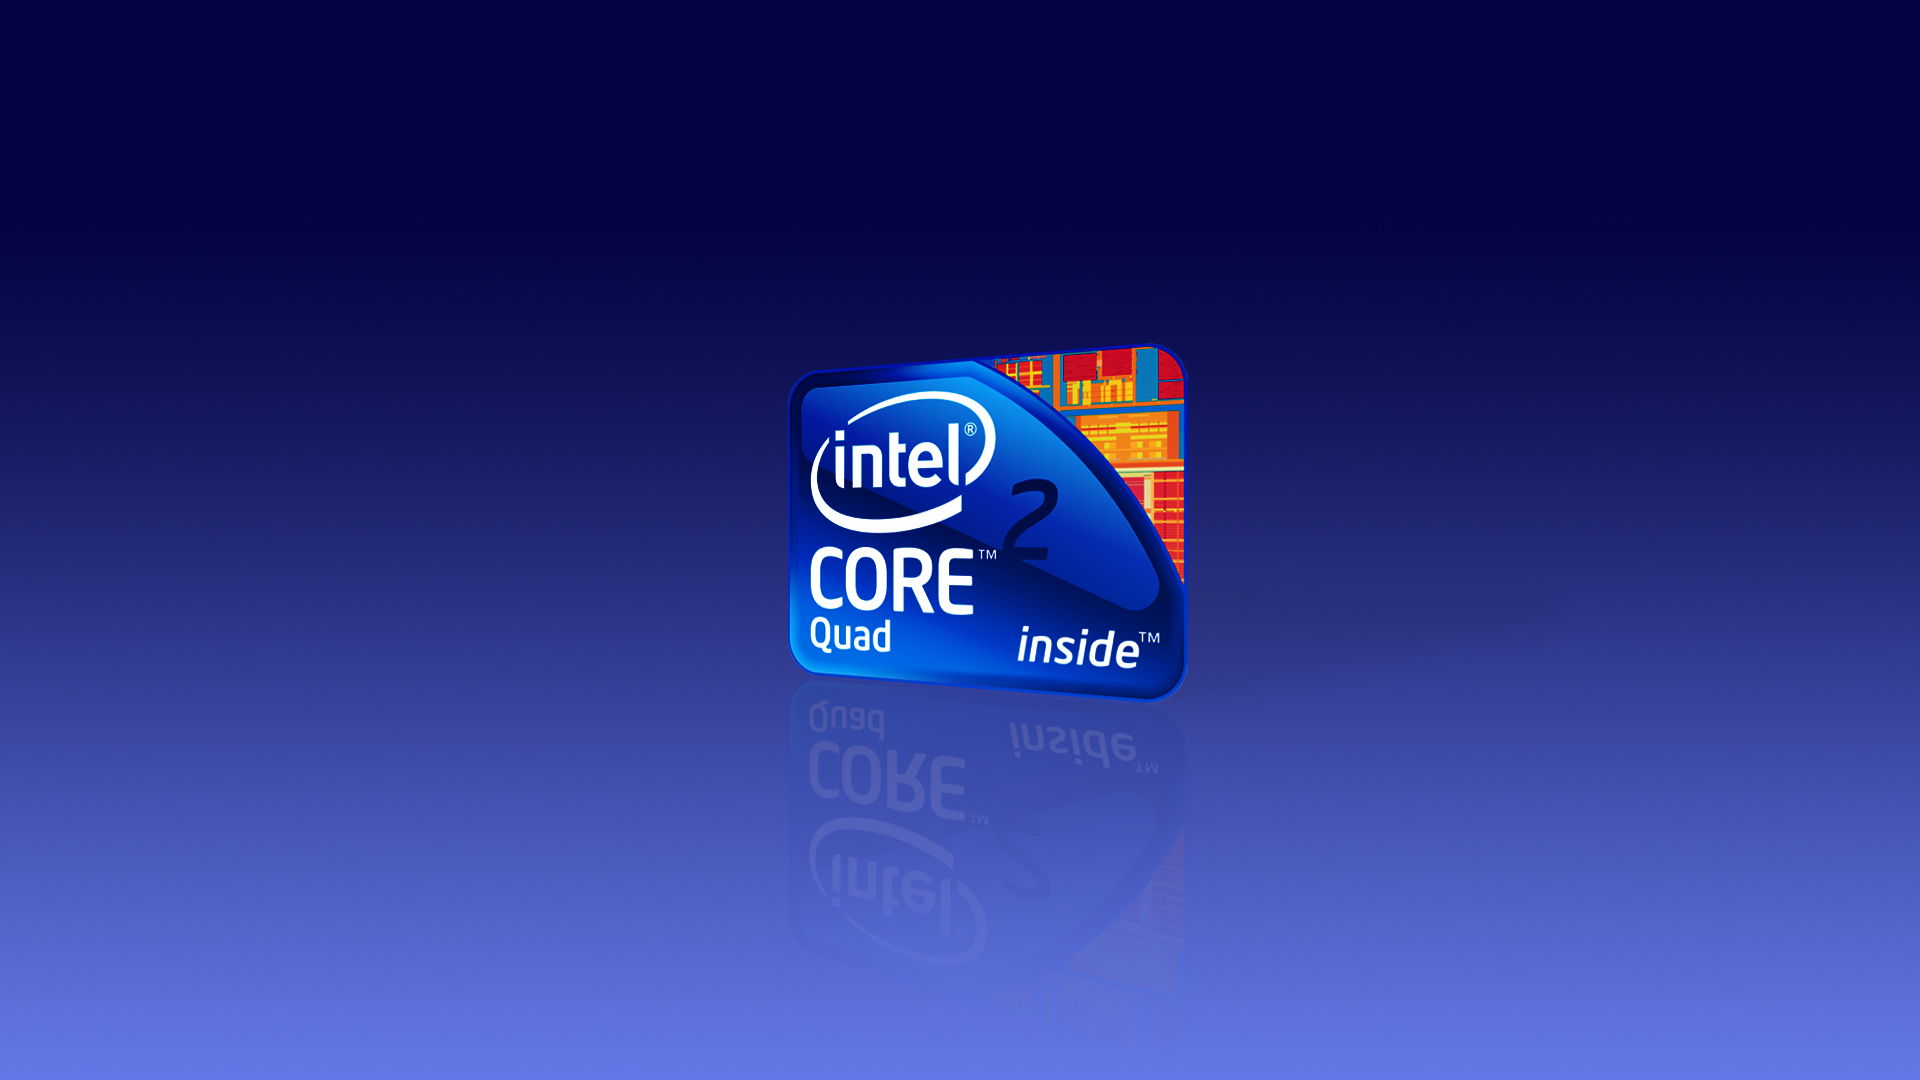 Intel Logo Desktop Wallpapers Download Desktop Wallpaper Images 1920x1080